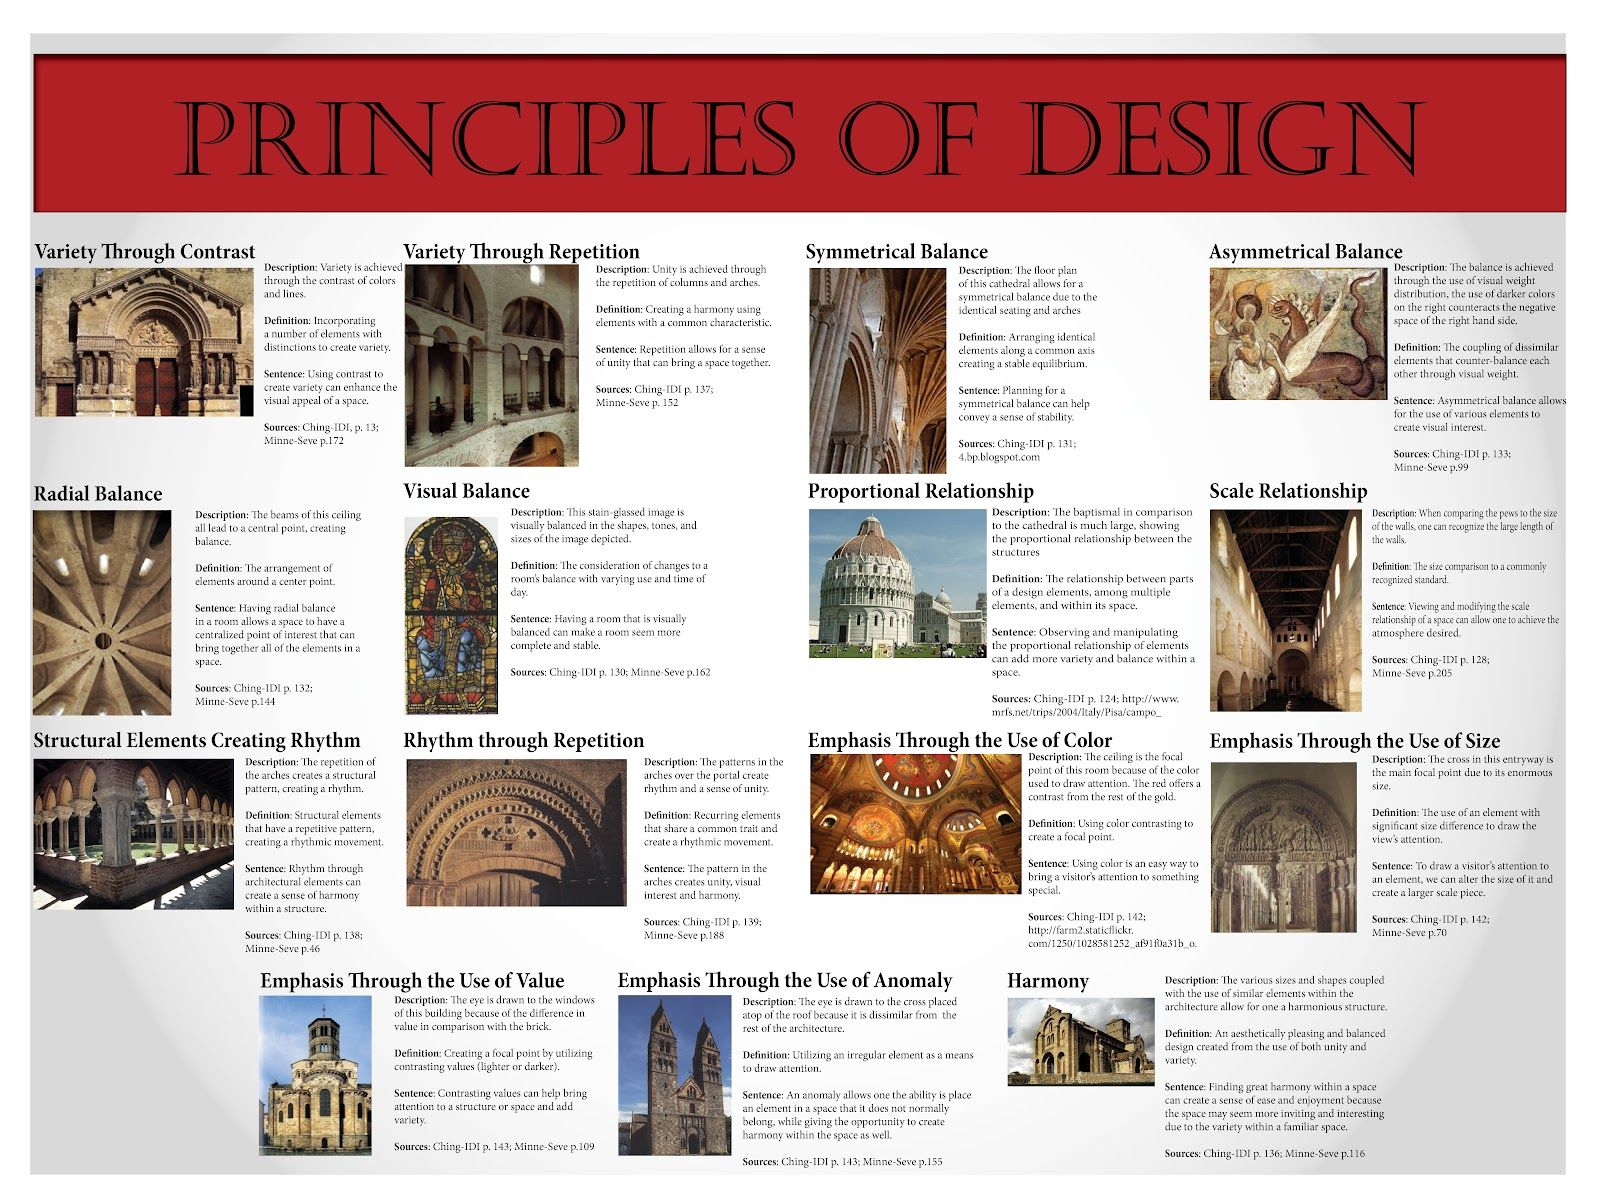 Large Poster Explaining The Principles Of Design Click On